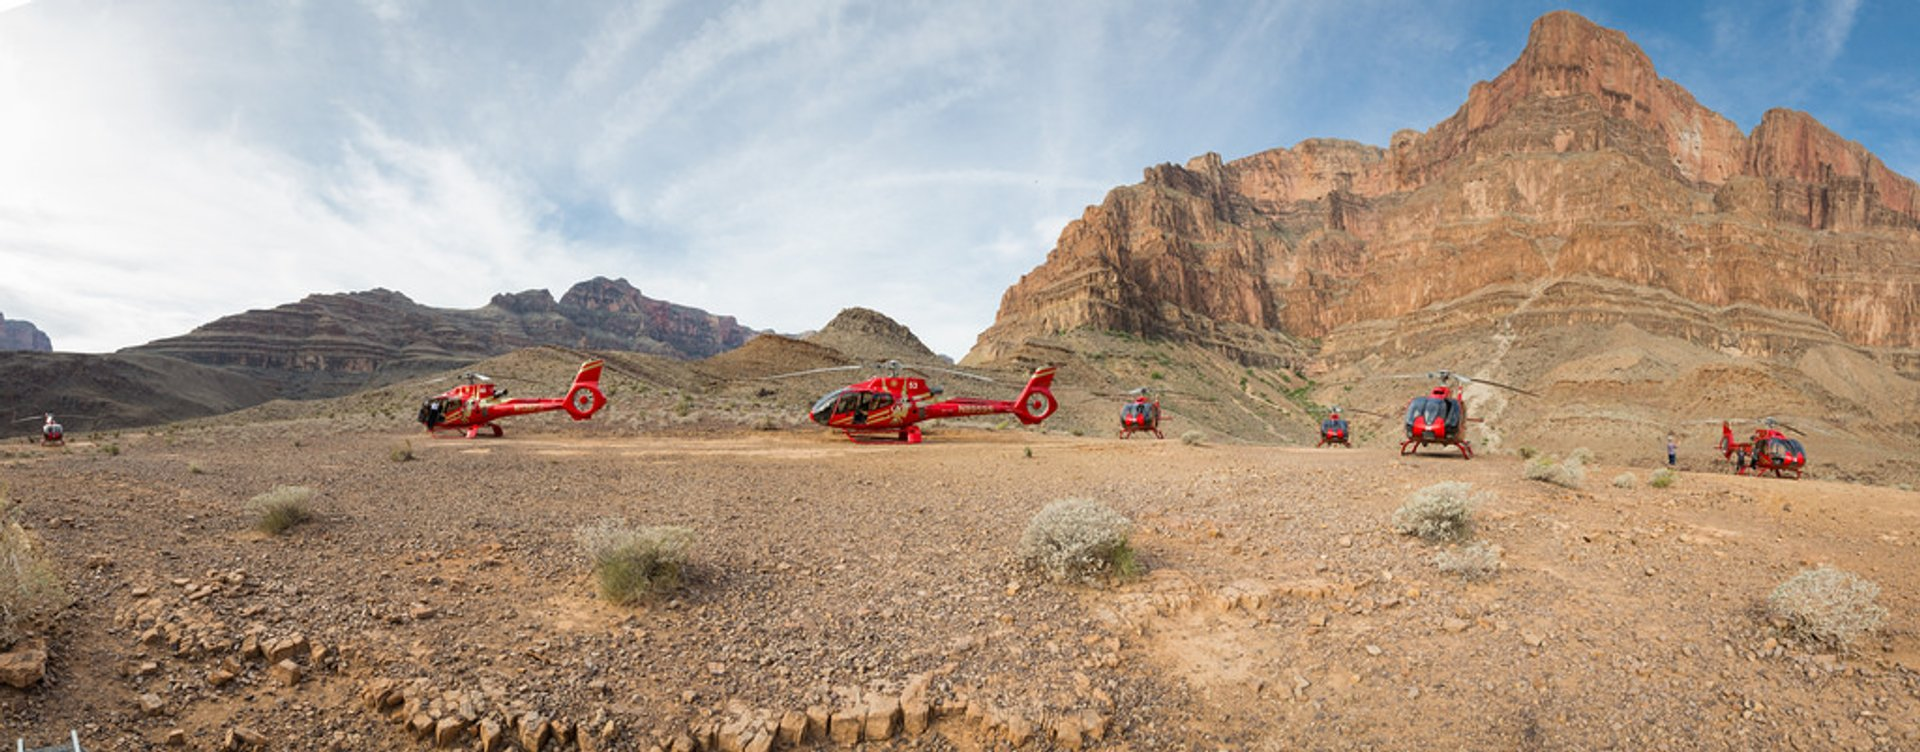 Helicopter Tours in Grand Canyon - Best Season 2019